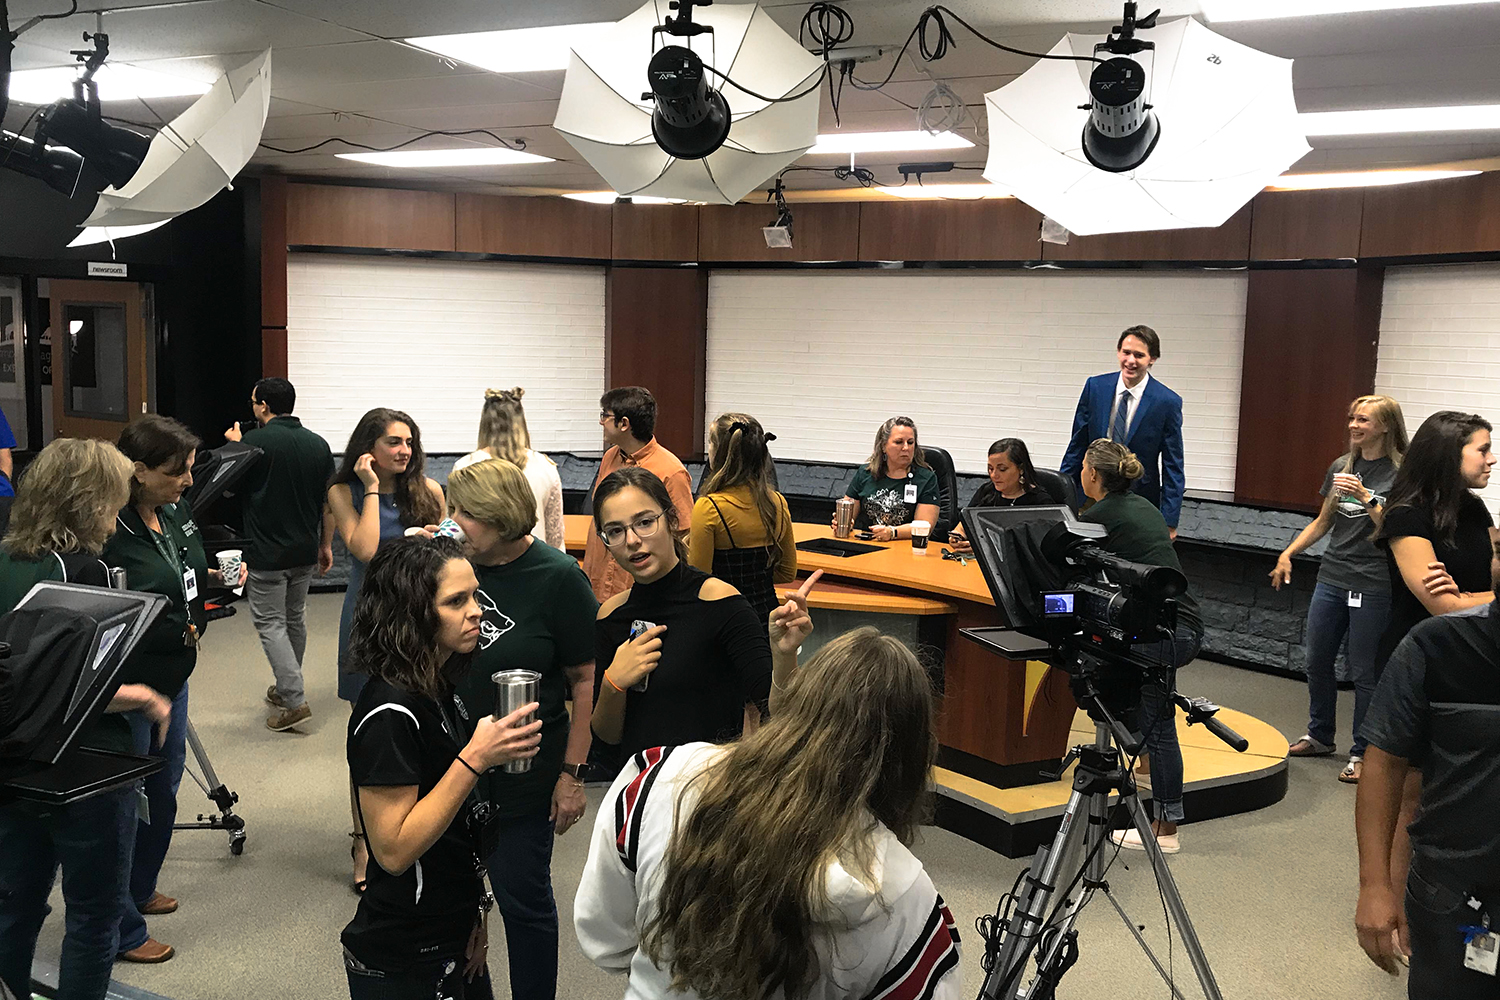 Giving a grand tour, junior Iriyana Lipkin shows off the newest features of the newly acquired KVUE set. The broadcast staff worked since late August on remodeling.